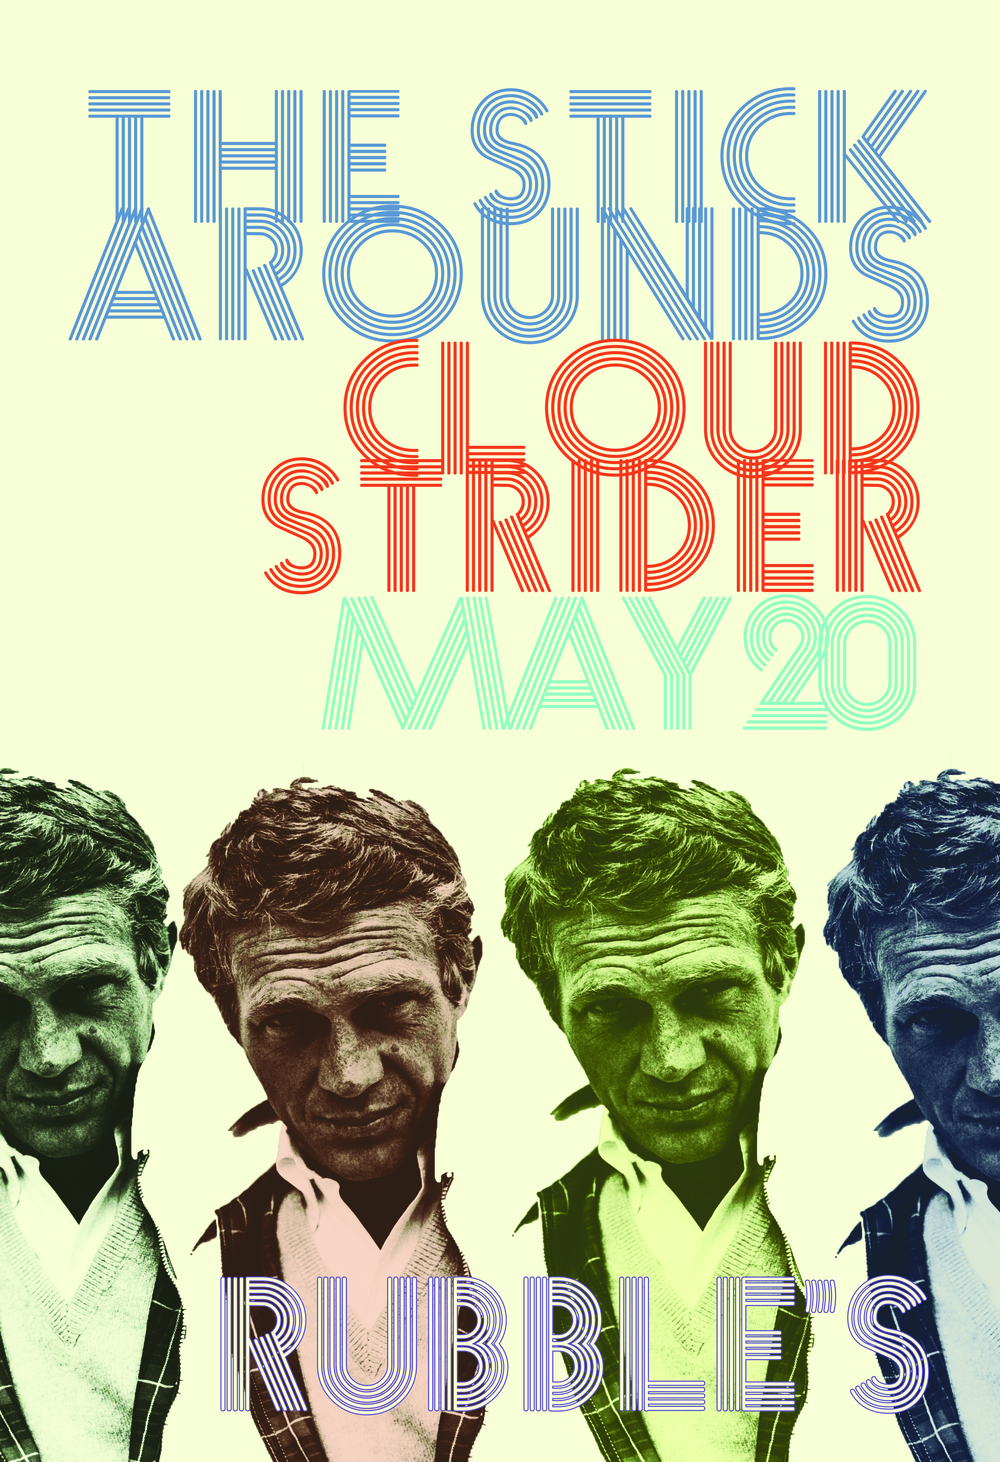 Stick Arounds Rubbles May 20 Poster colored.jpg